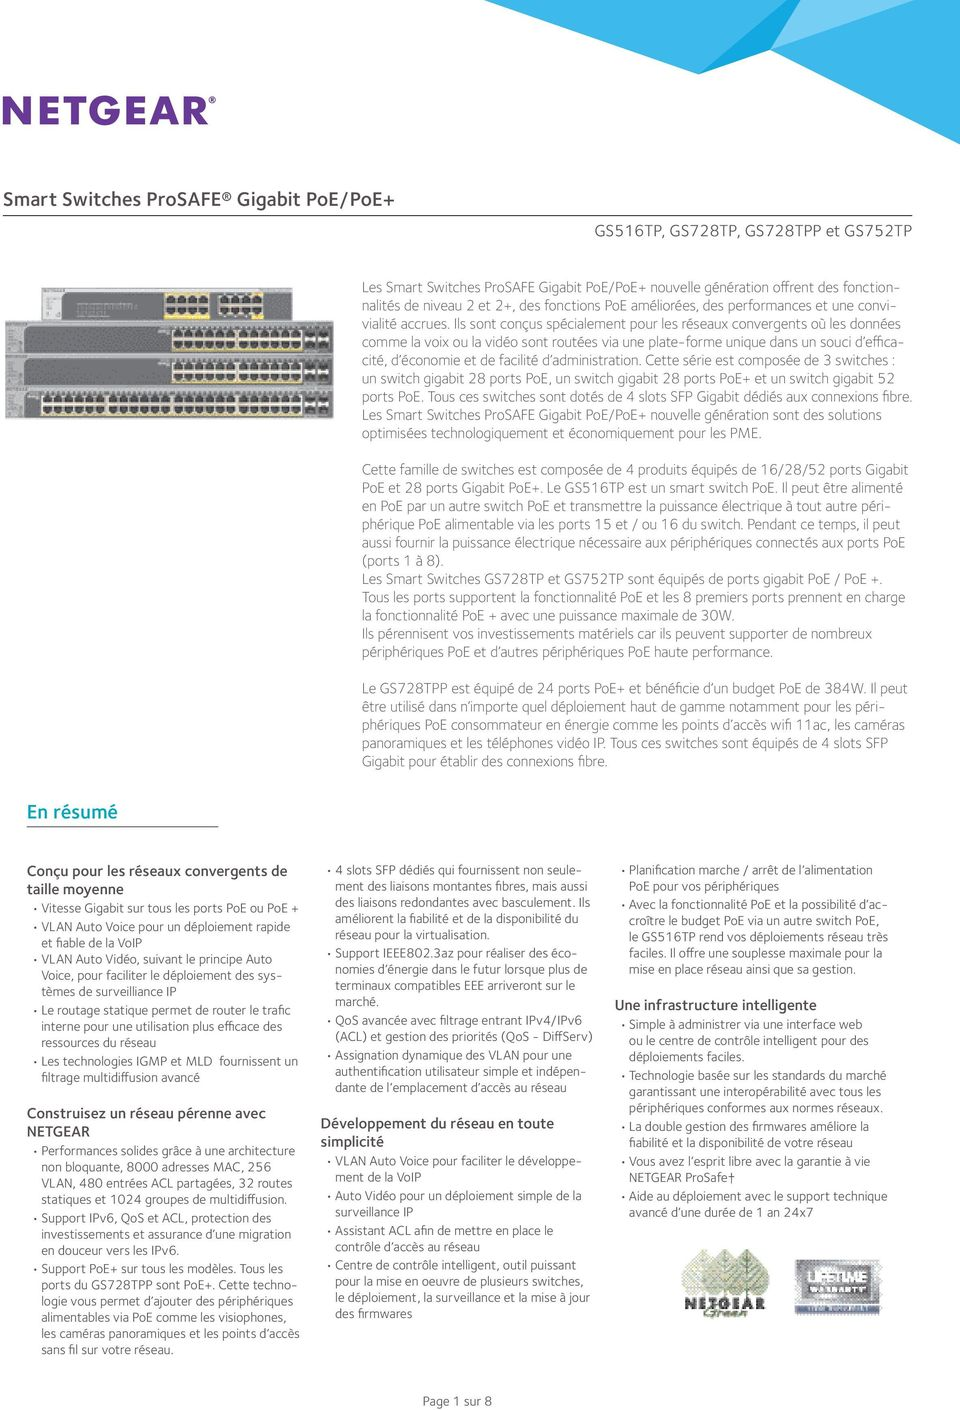 administration. Cette série est composée de 3 switches : un switch gigabit 28 ports PoE, un switch gigabit 28 ports PoE+ et un switch gigabit 52 ports PoE.